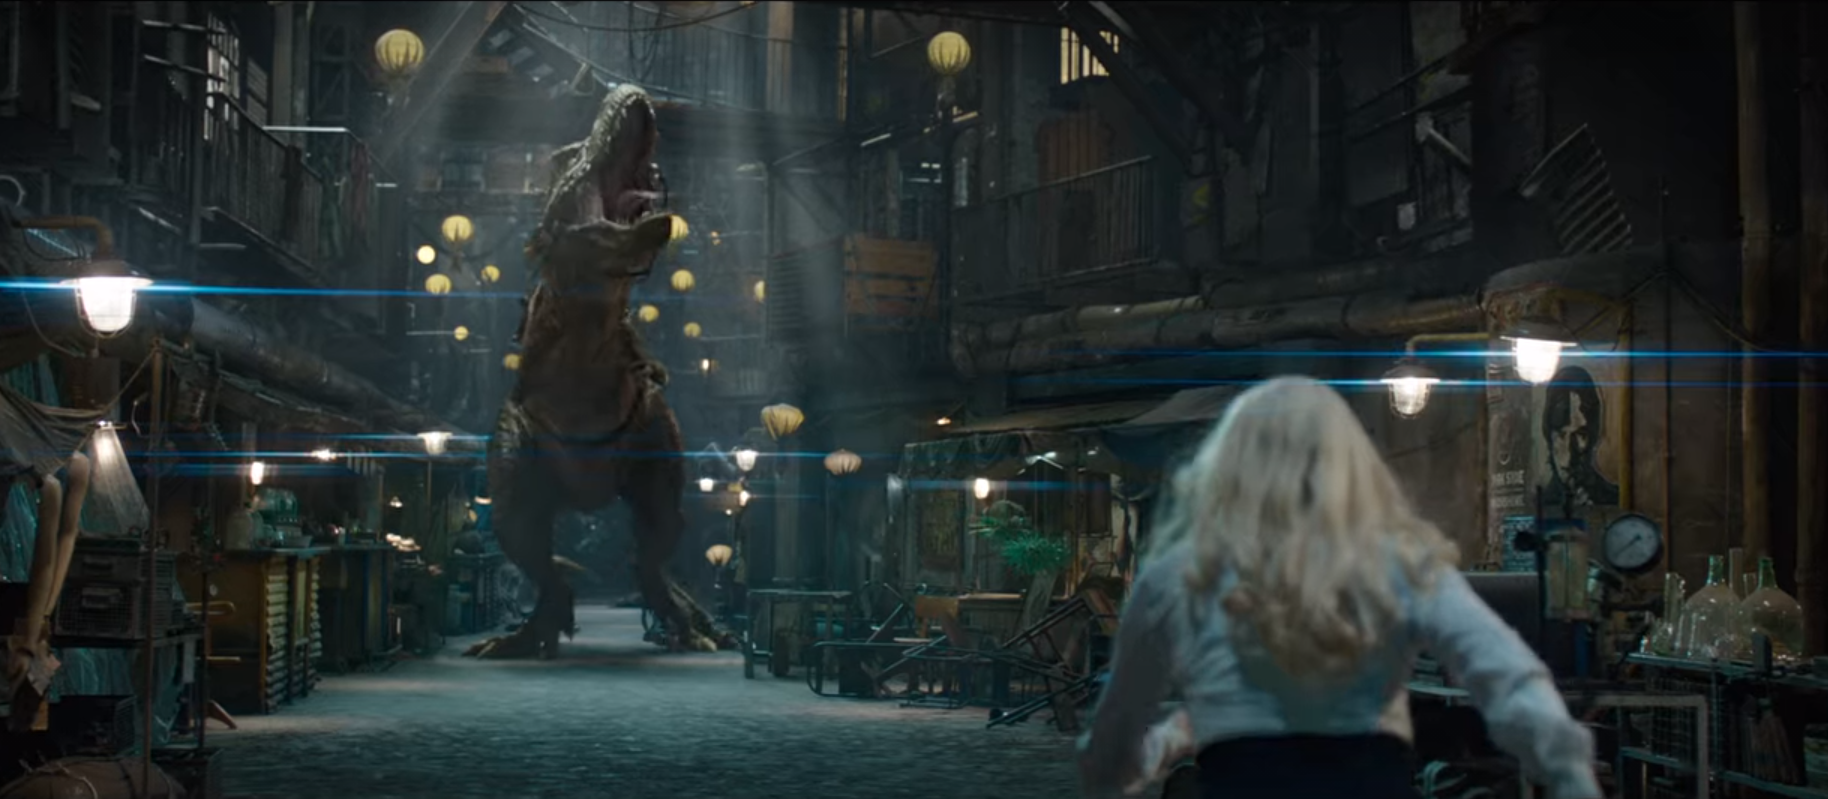 Yes, that's a Tyrannosaurus Rex!